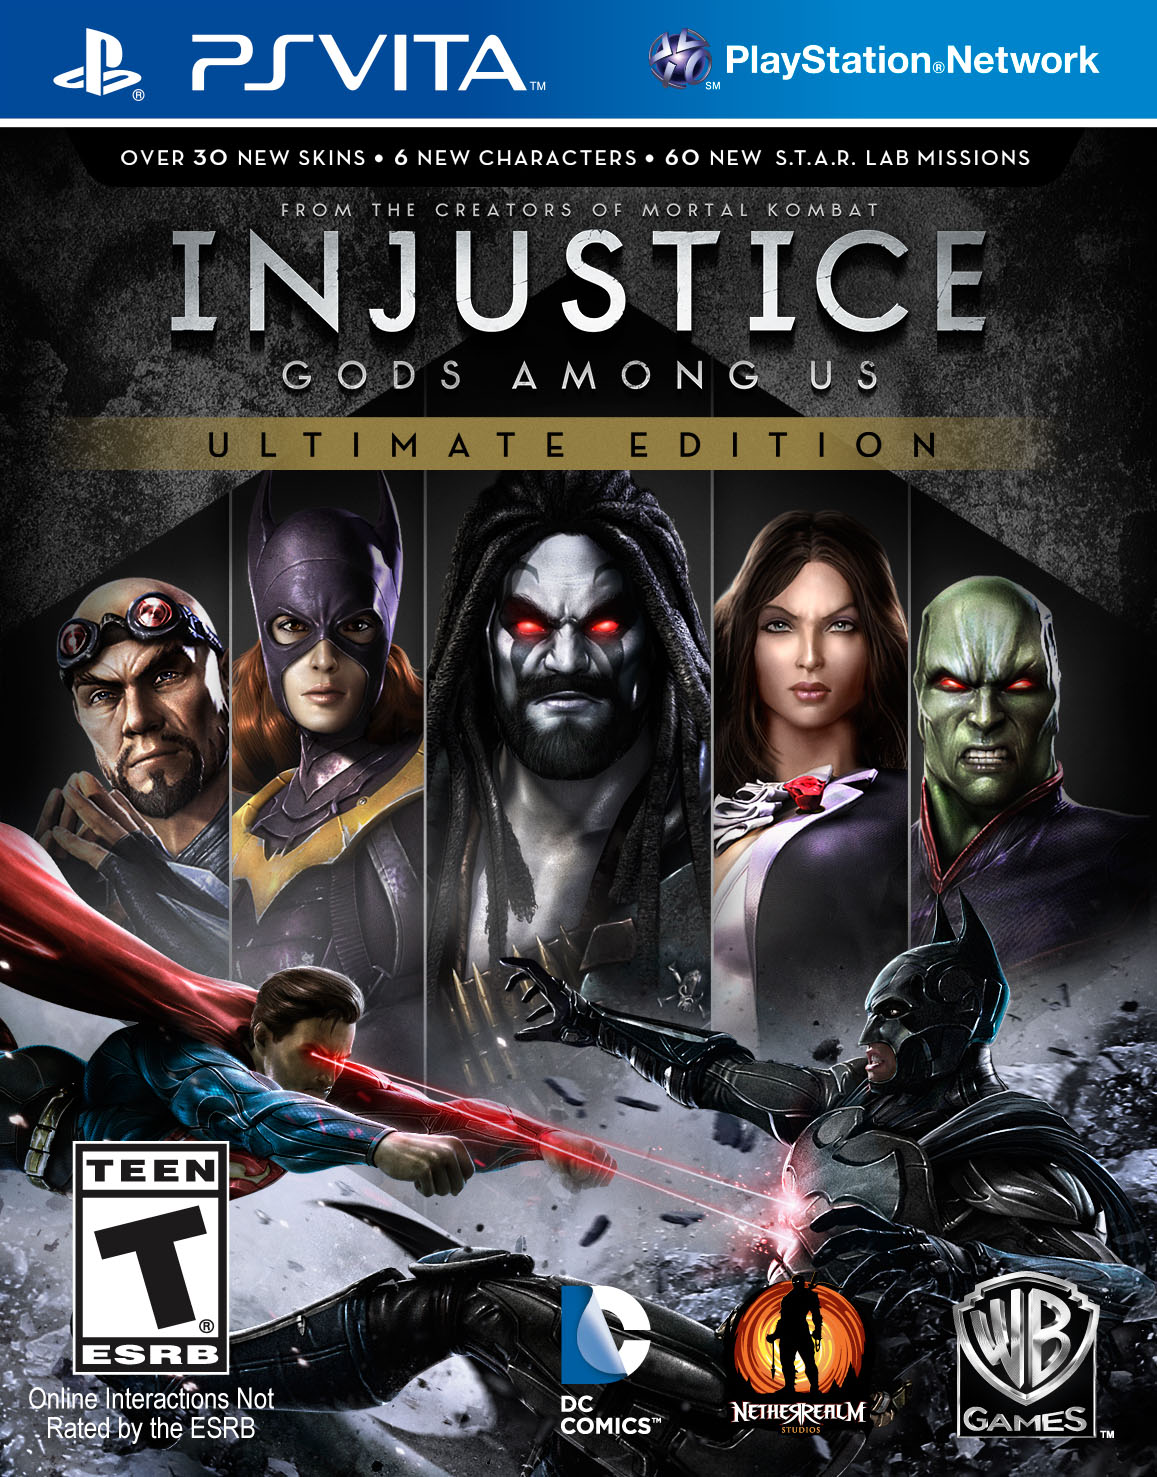 injustice-gods-among-us-ultimade-edtion-boxart-01